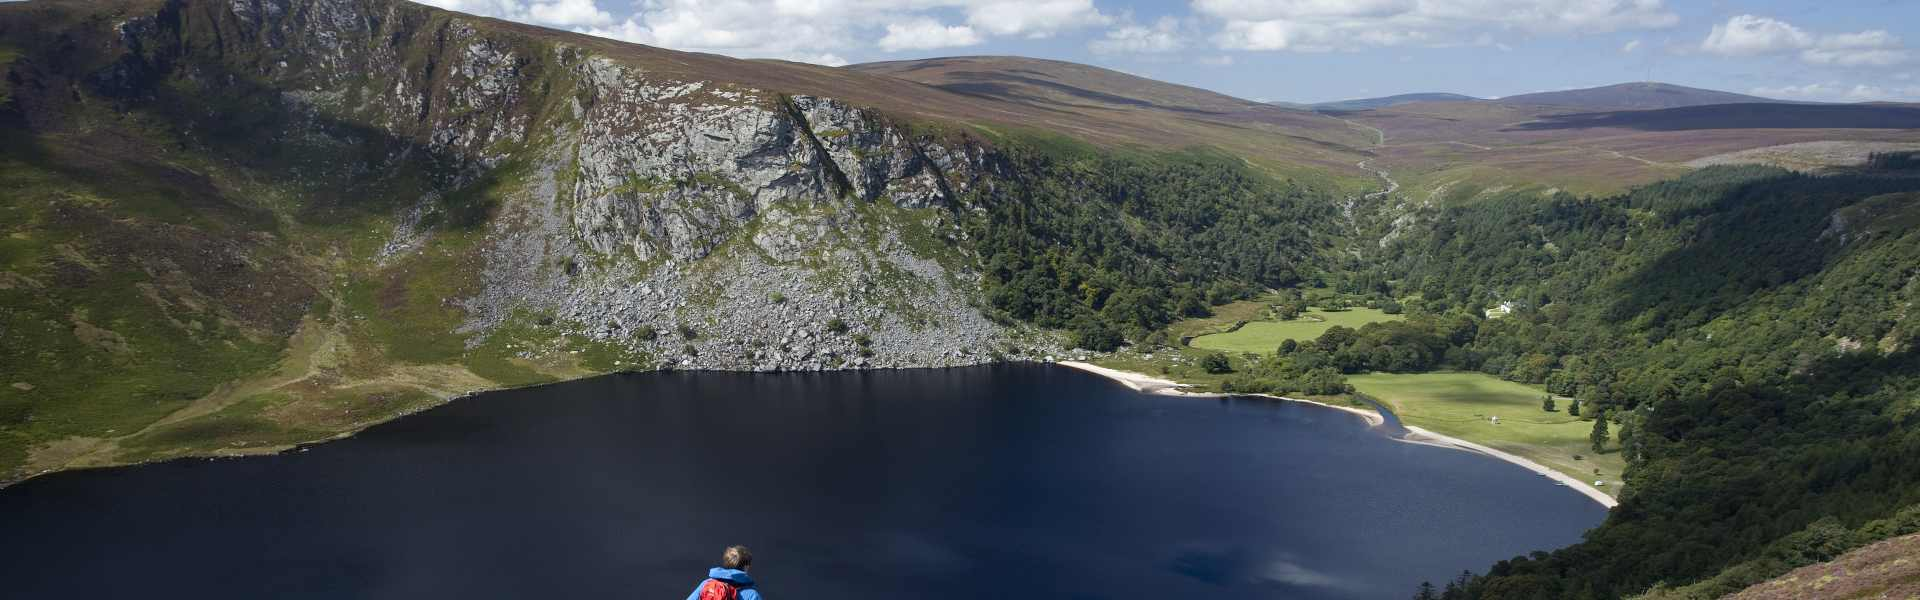 Wicklow Visitor Attractions Places To Visit Travel Ireland